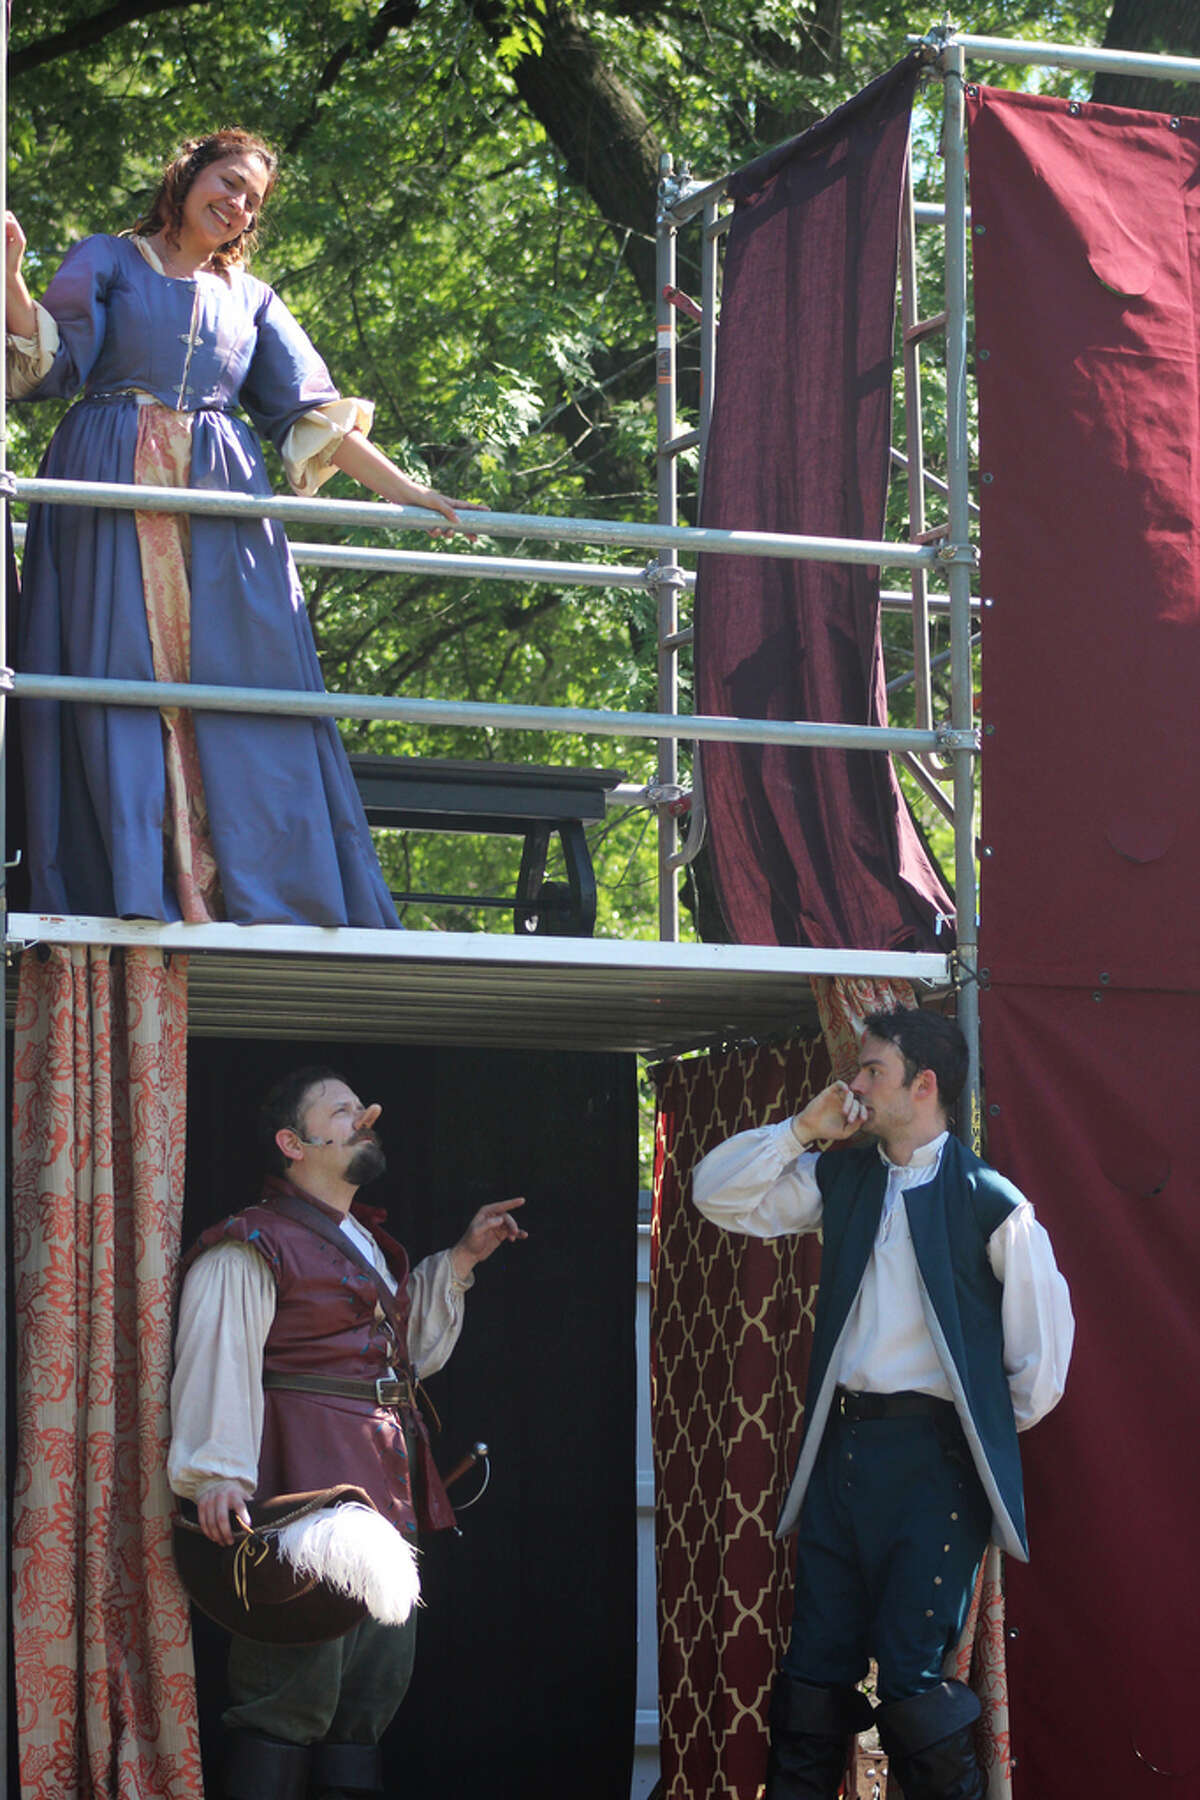 A scene from Saratoga Shakespeare Company's 2016 production of